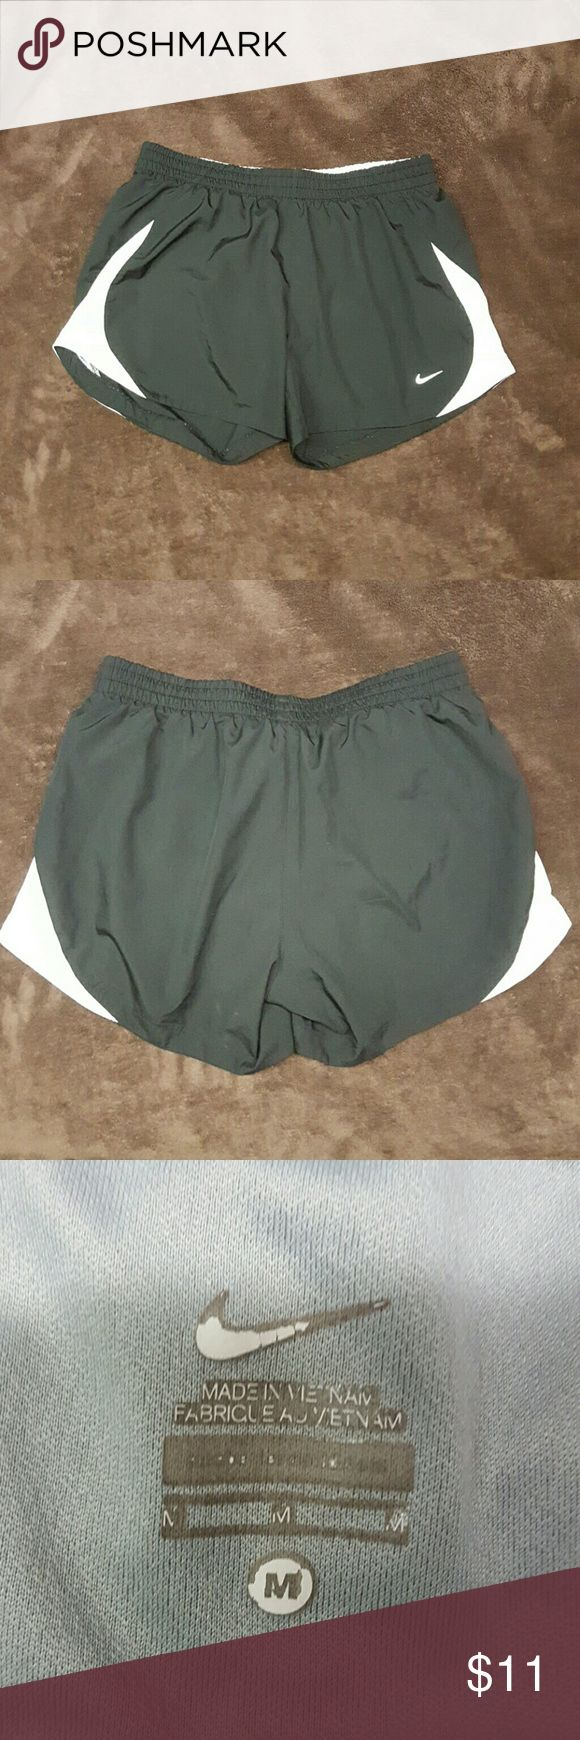 Nike running short with built in underlayer Gently used.  Built in underwear layer. Interior is silver. Nike Shorts